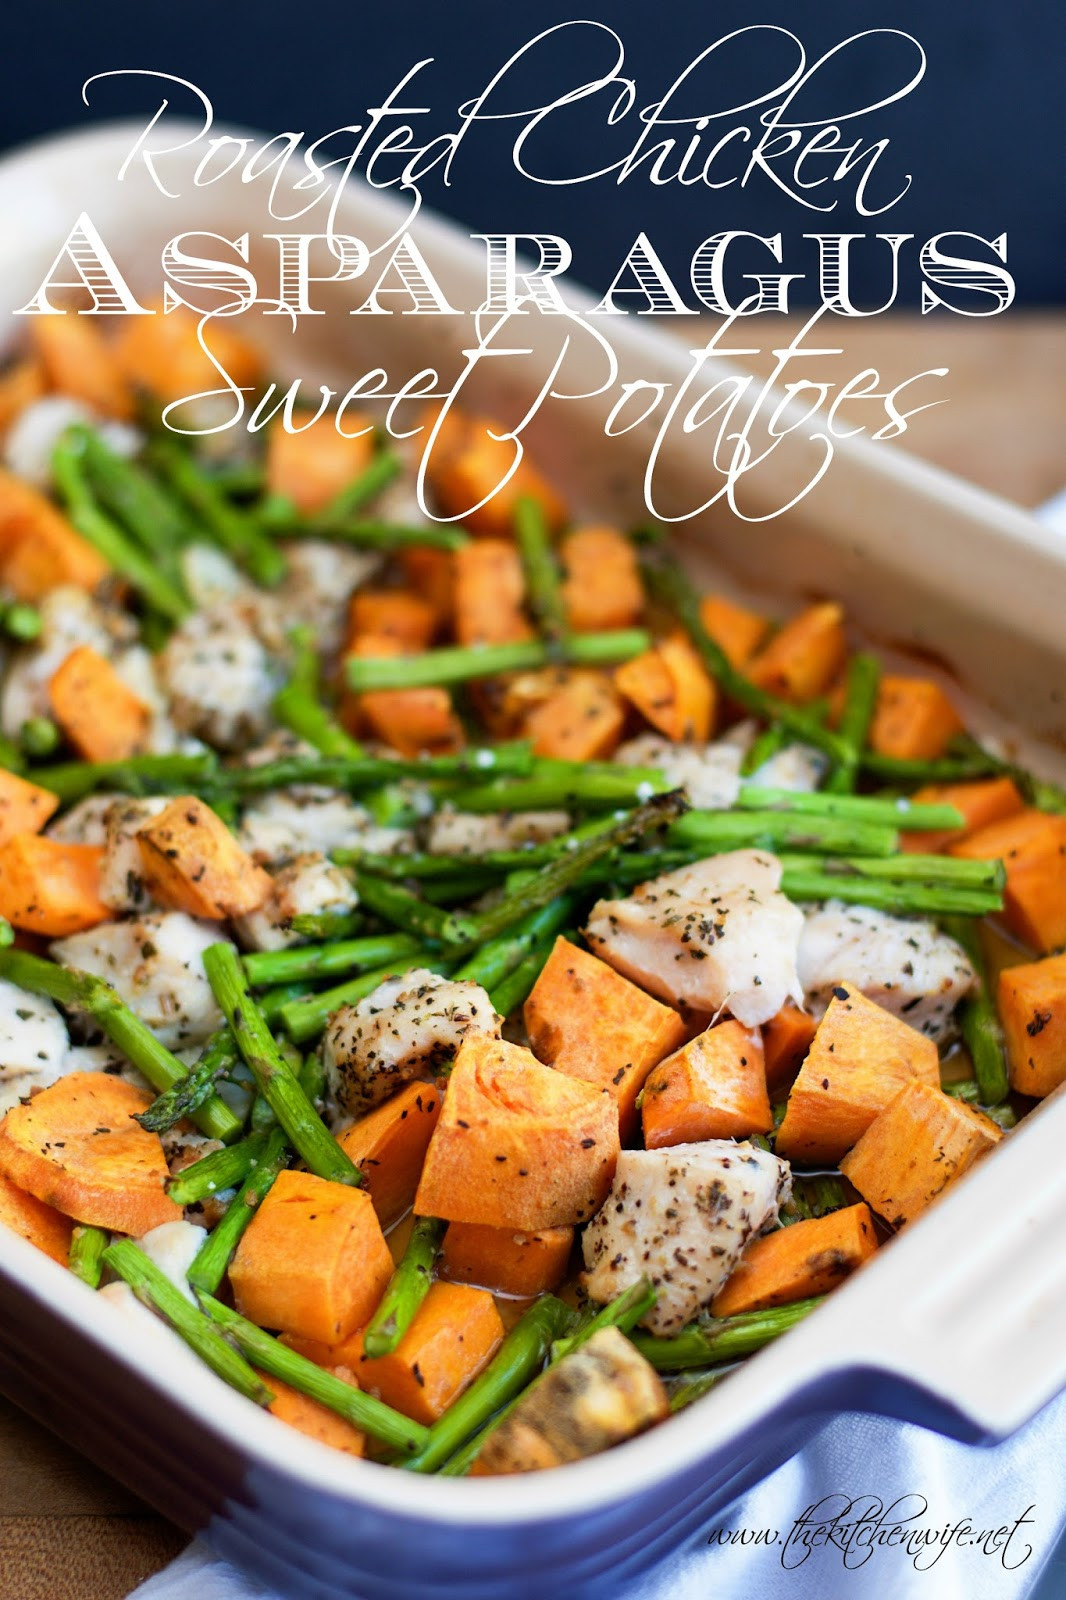 Is Roasted Chicken Healthy  Roasted Chicken with Asparagus and Sweet Potato Recipe